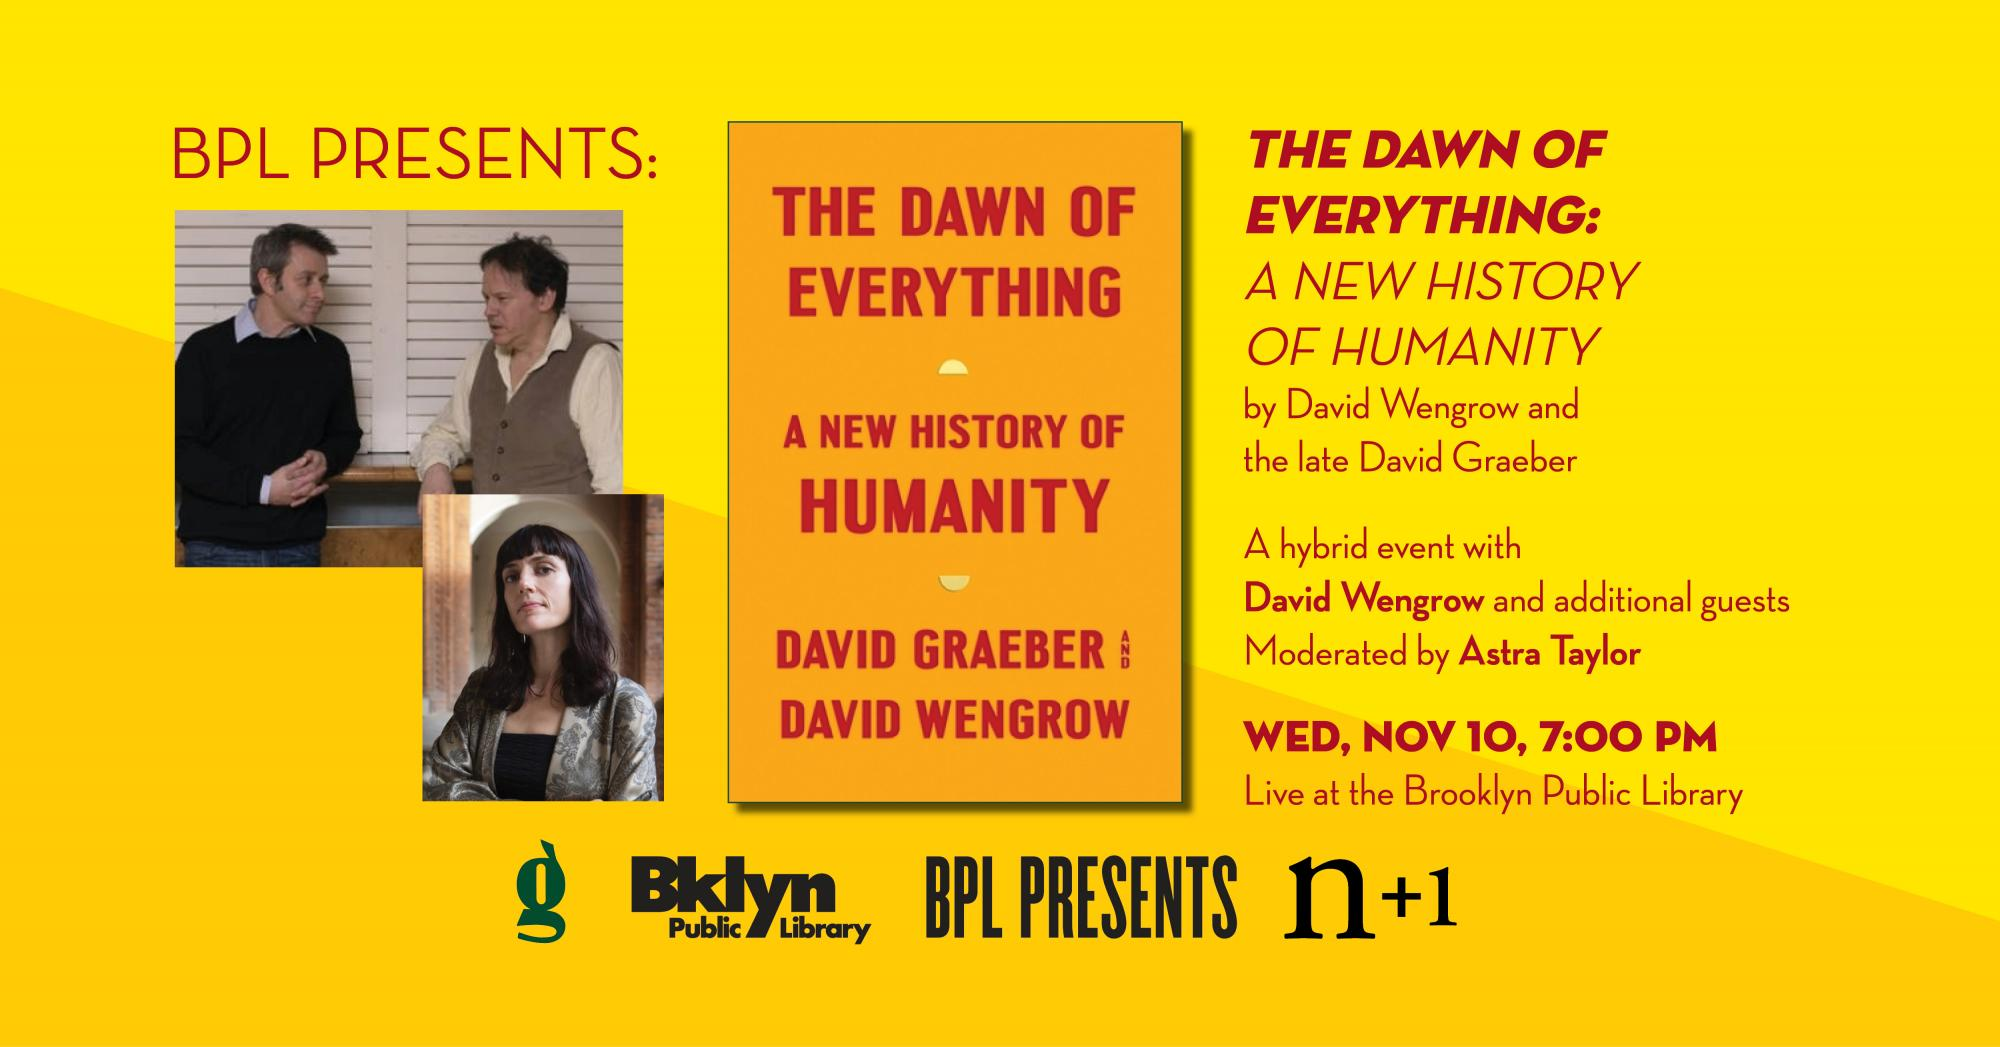 BPL Presents The Dawn of Everything: A New History of Humanity by David Wengrow and the late David Graeber, Wednesday, November 10, 7:00 PM